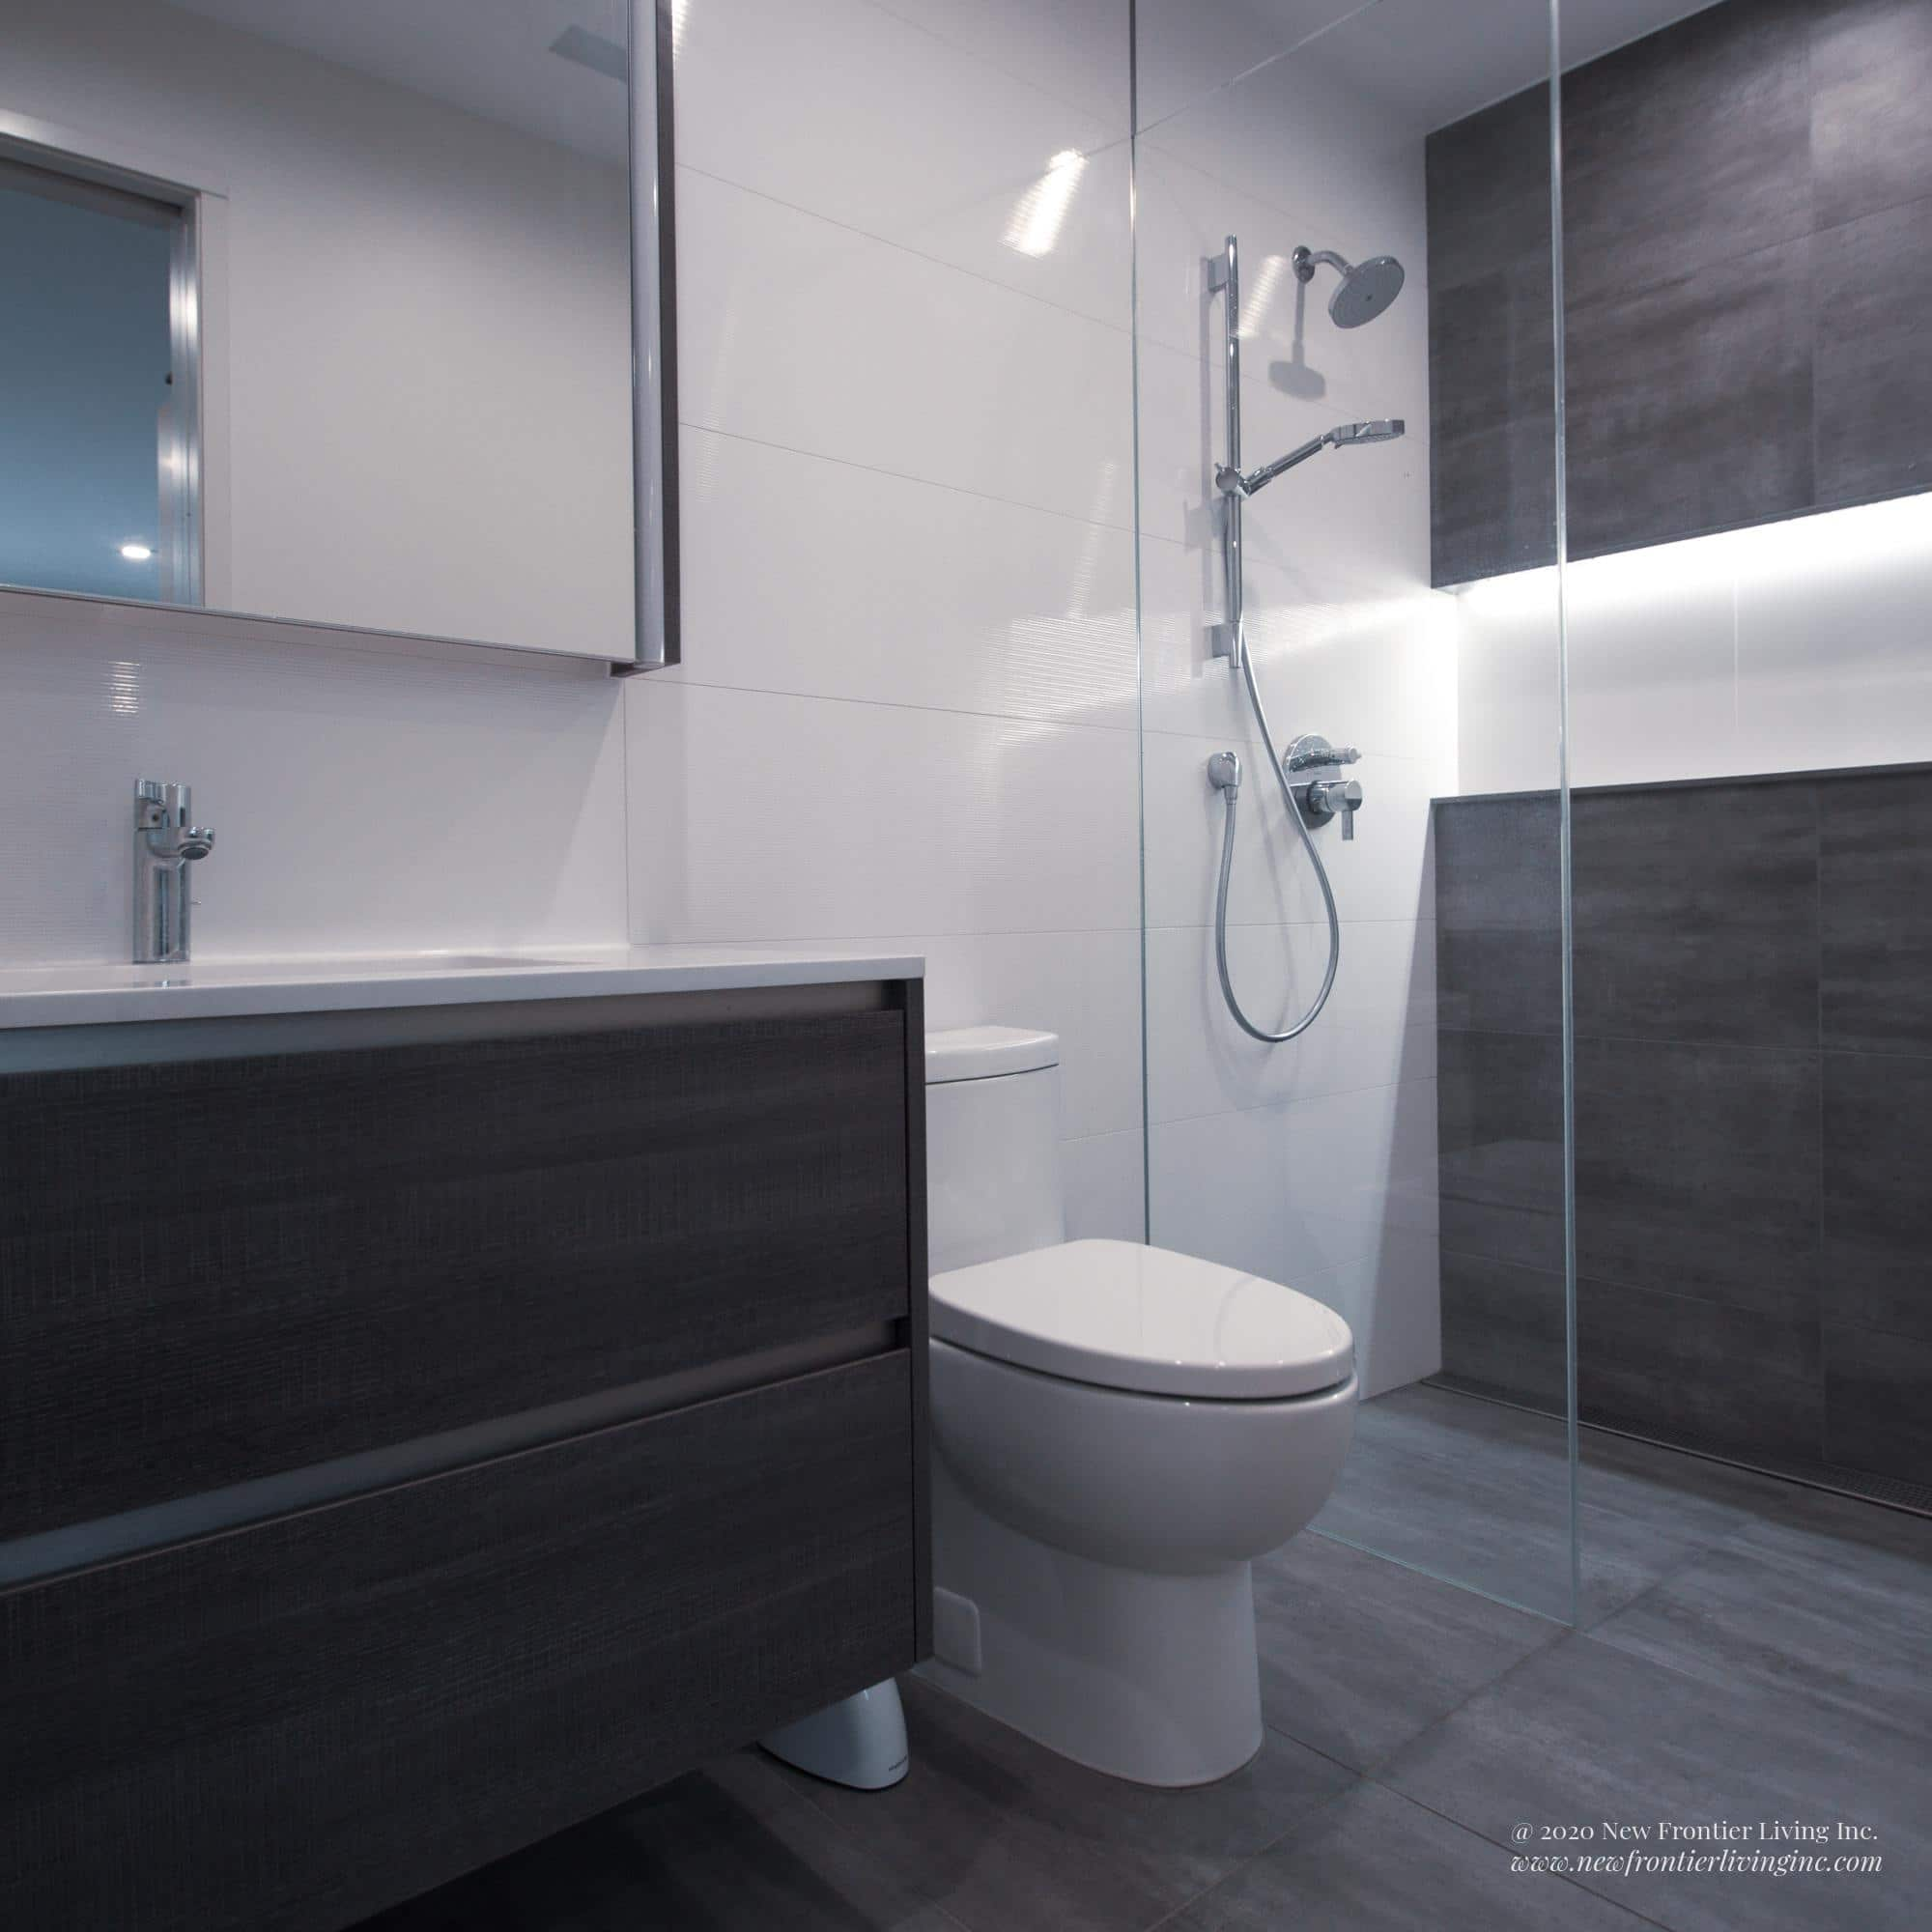 Gray vanity and tiles bathroom with white countertop and backsplash and a niche for bathroom essentials in the shower